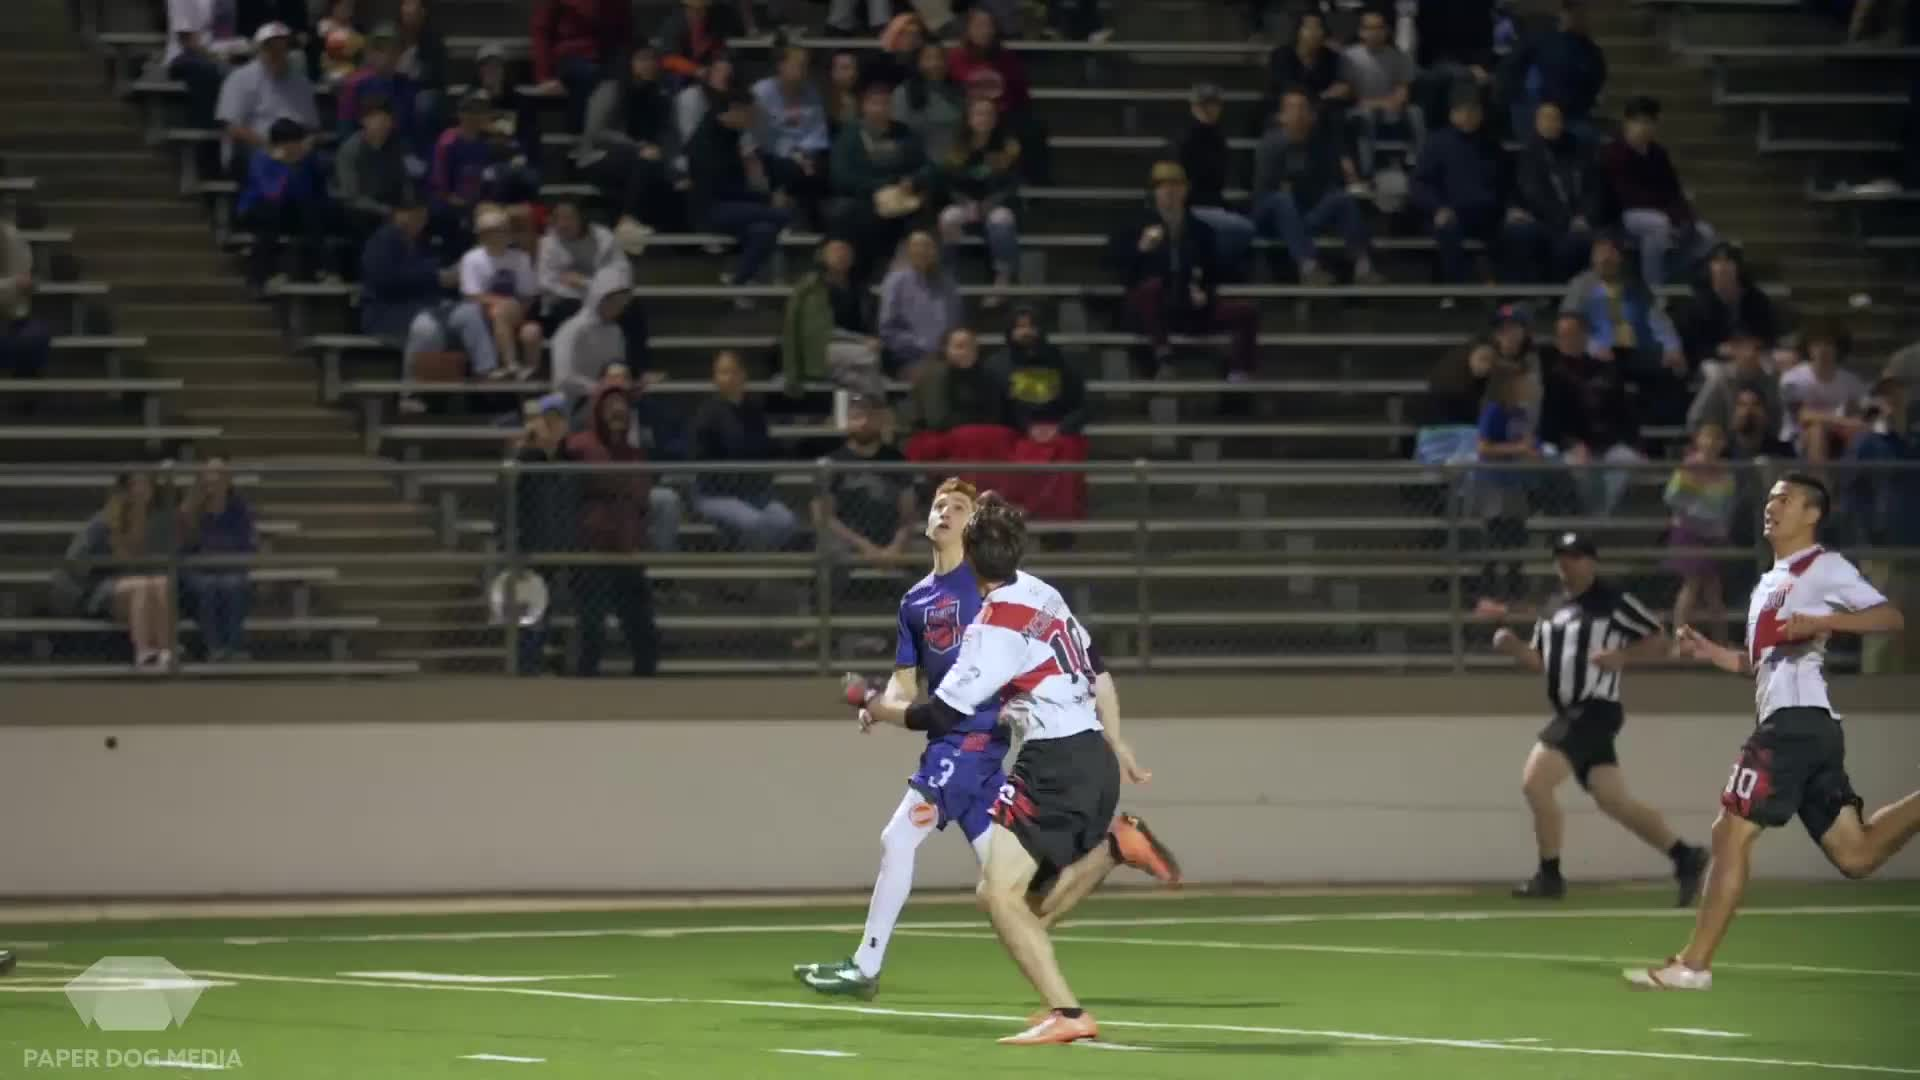 american ultimate disc league, audl, ultimate, ultimate frisbee, Sean McDougall Swat GIFs